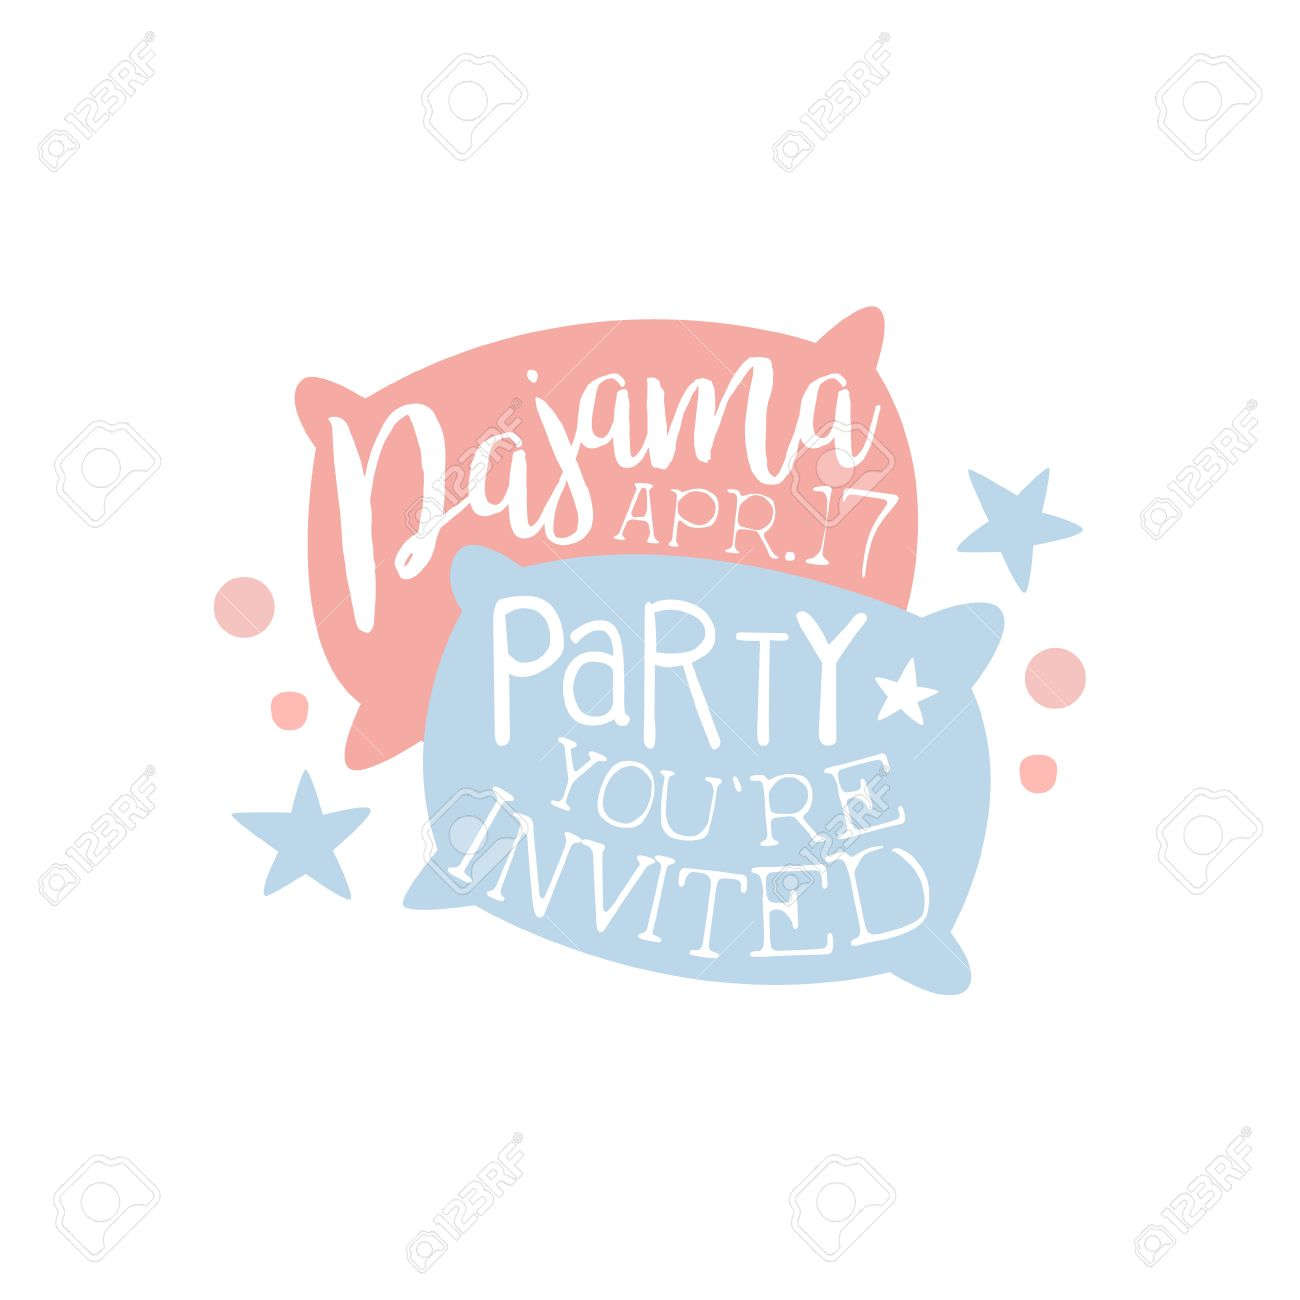 Girly Pajama Party Invitation Card Template With Two Pillows – Pajama Party Invites